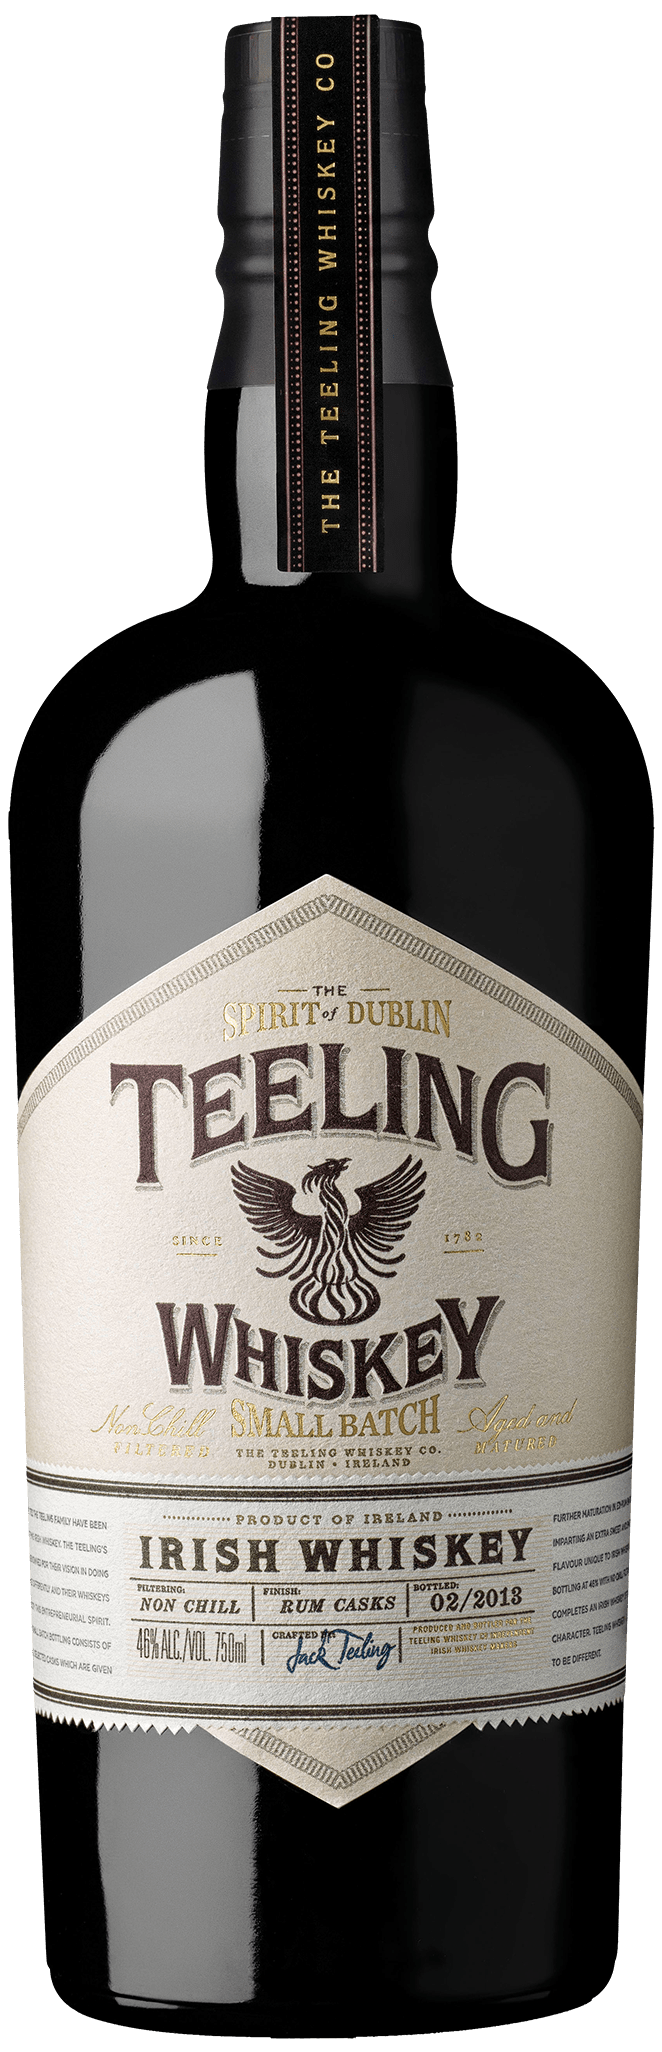 Teeling Whiskey Small Batch 750ml